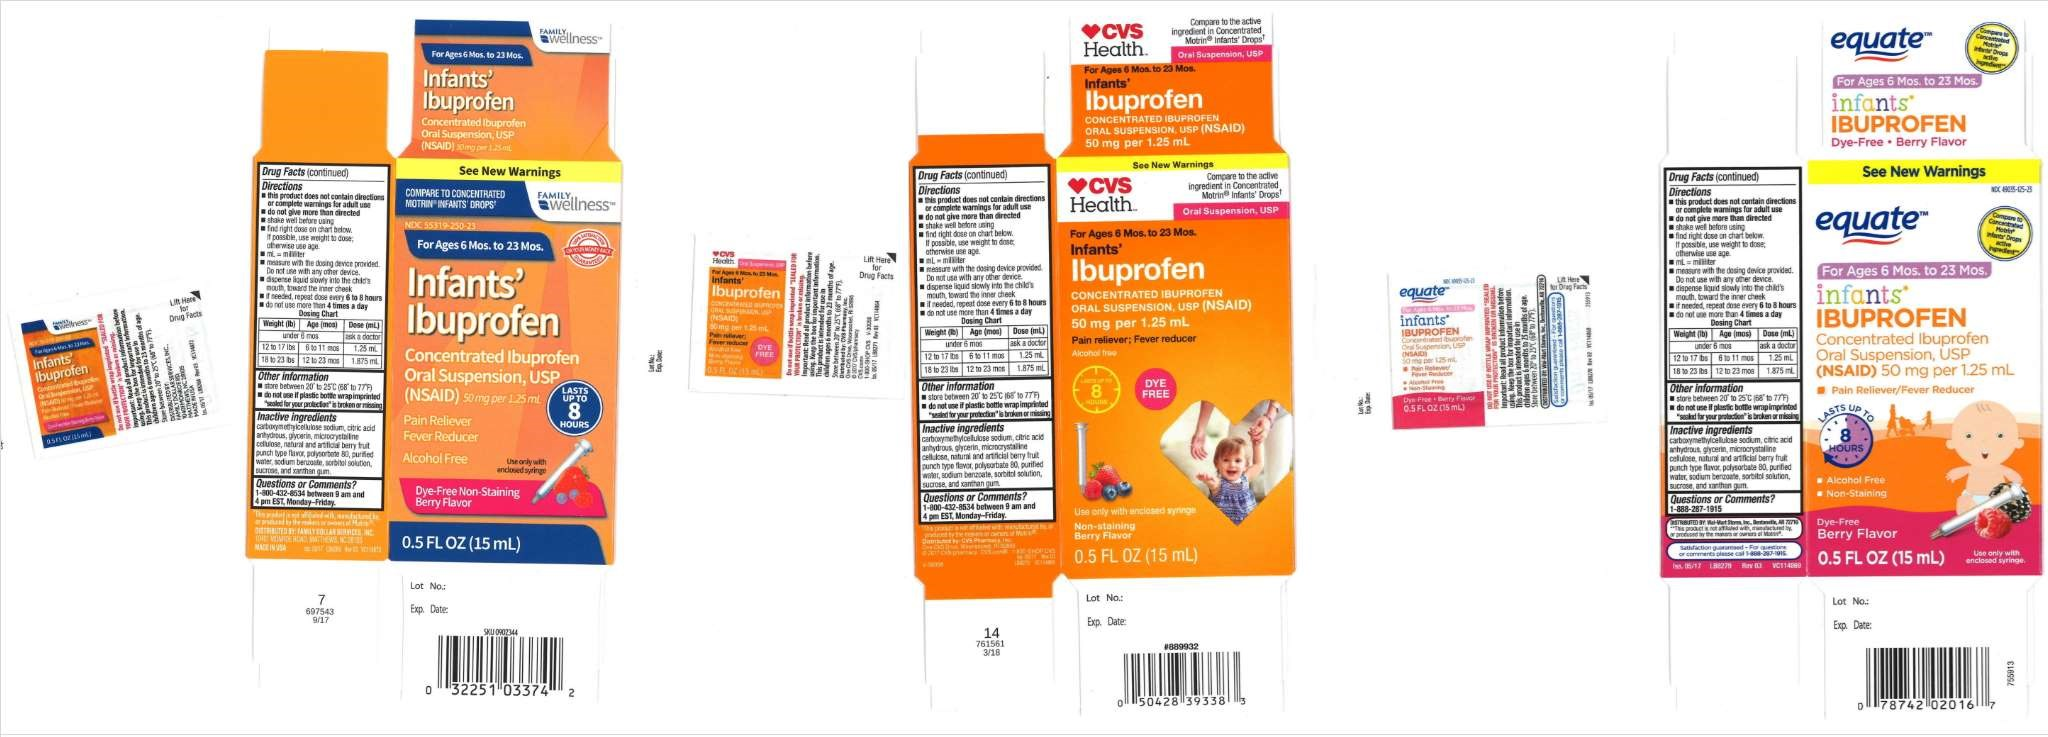 Childrens' Pain Reliever Recalled Due to Potentially Higher Potency Level